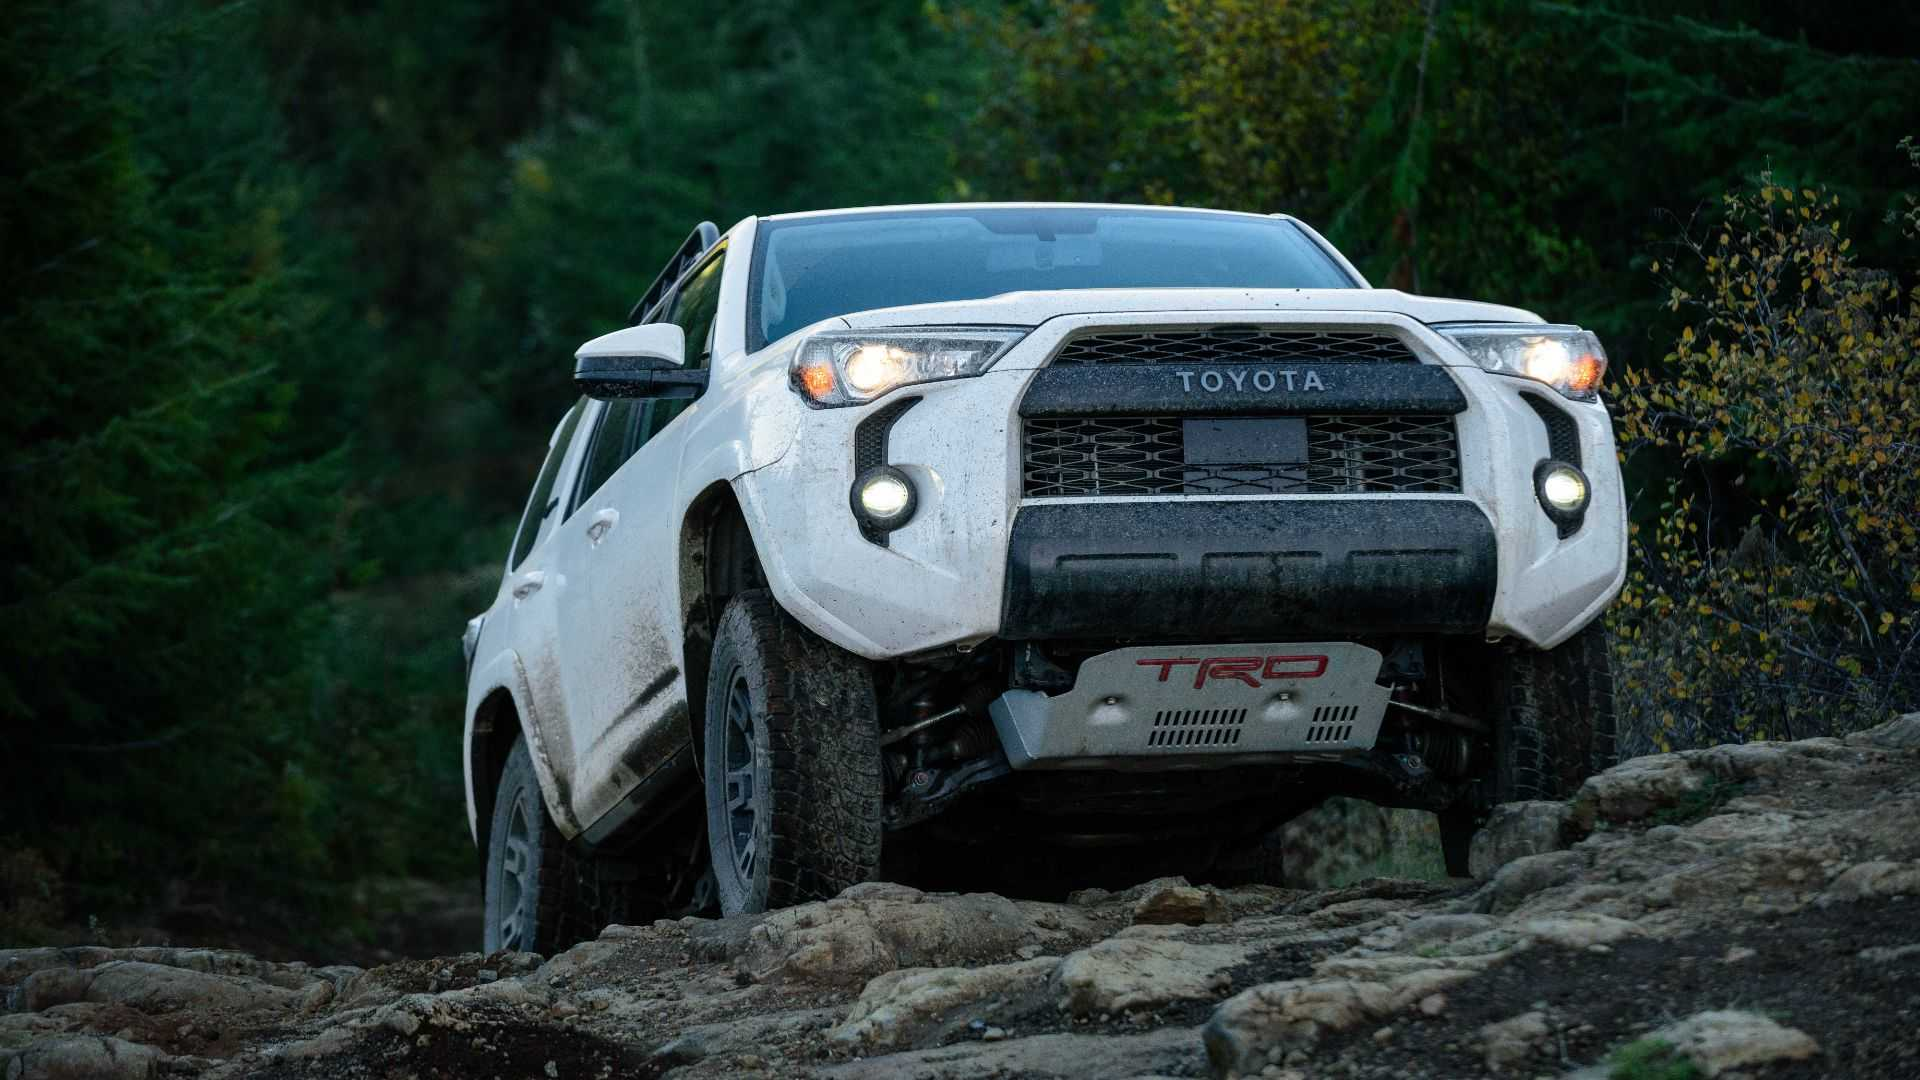 2020 Toyota 4runner Redesign, Price >> Ancient Toyota 4runner Getting Giant Price Increase